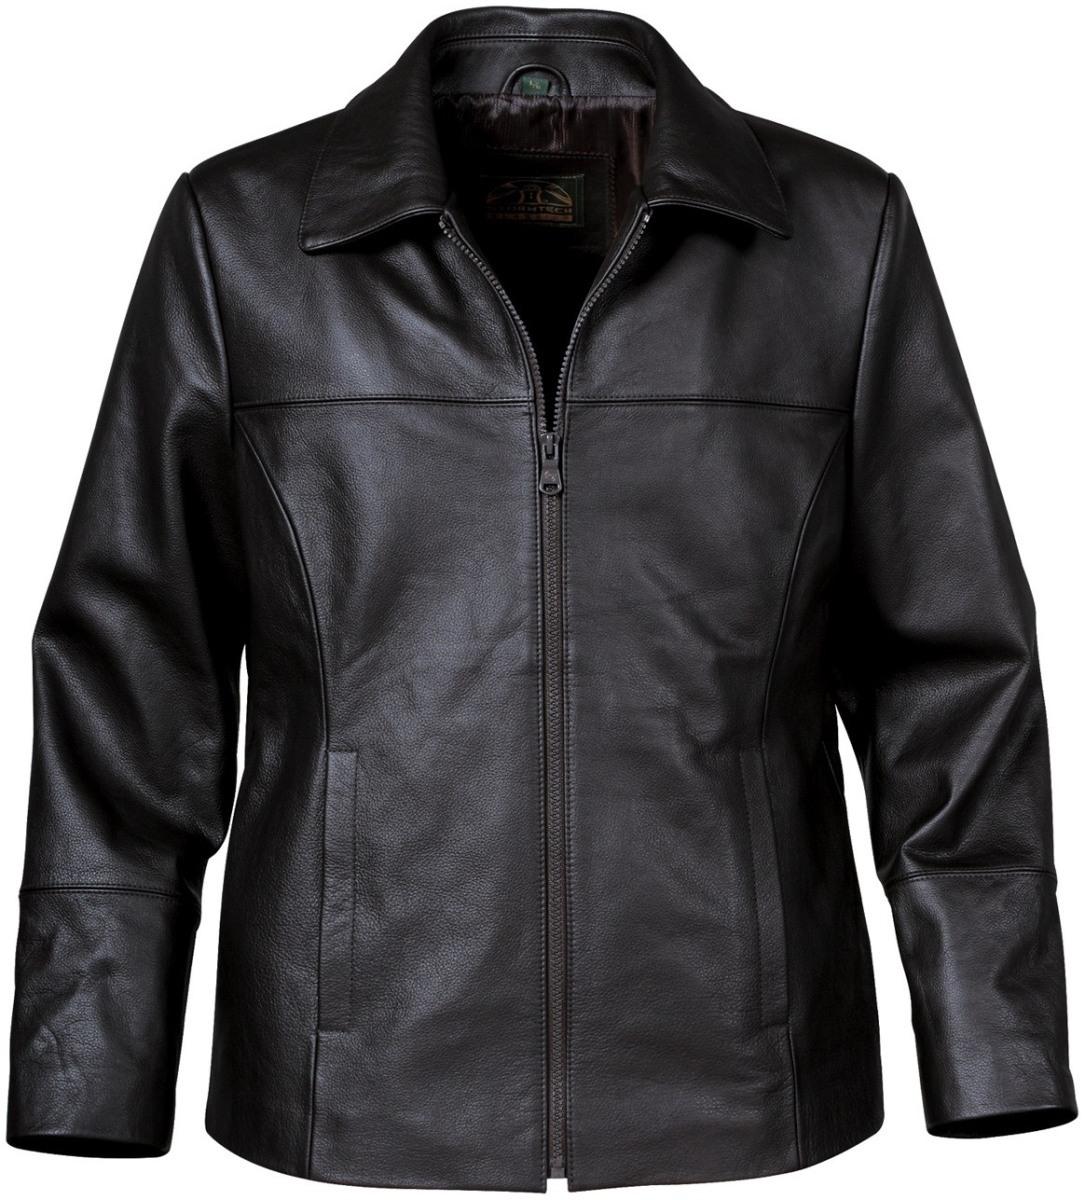 Women's Stormtech Classic Leather Jacket-StormTech